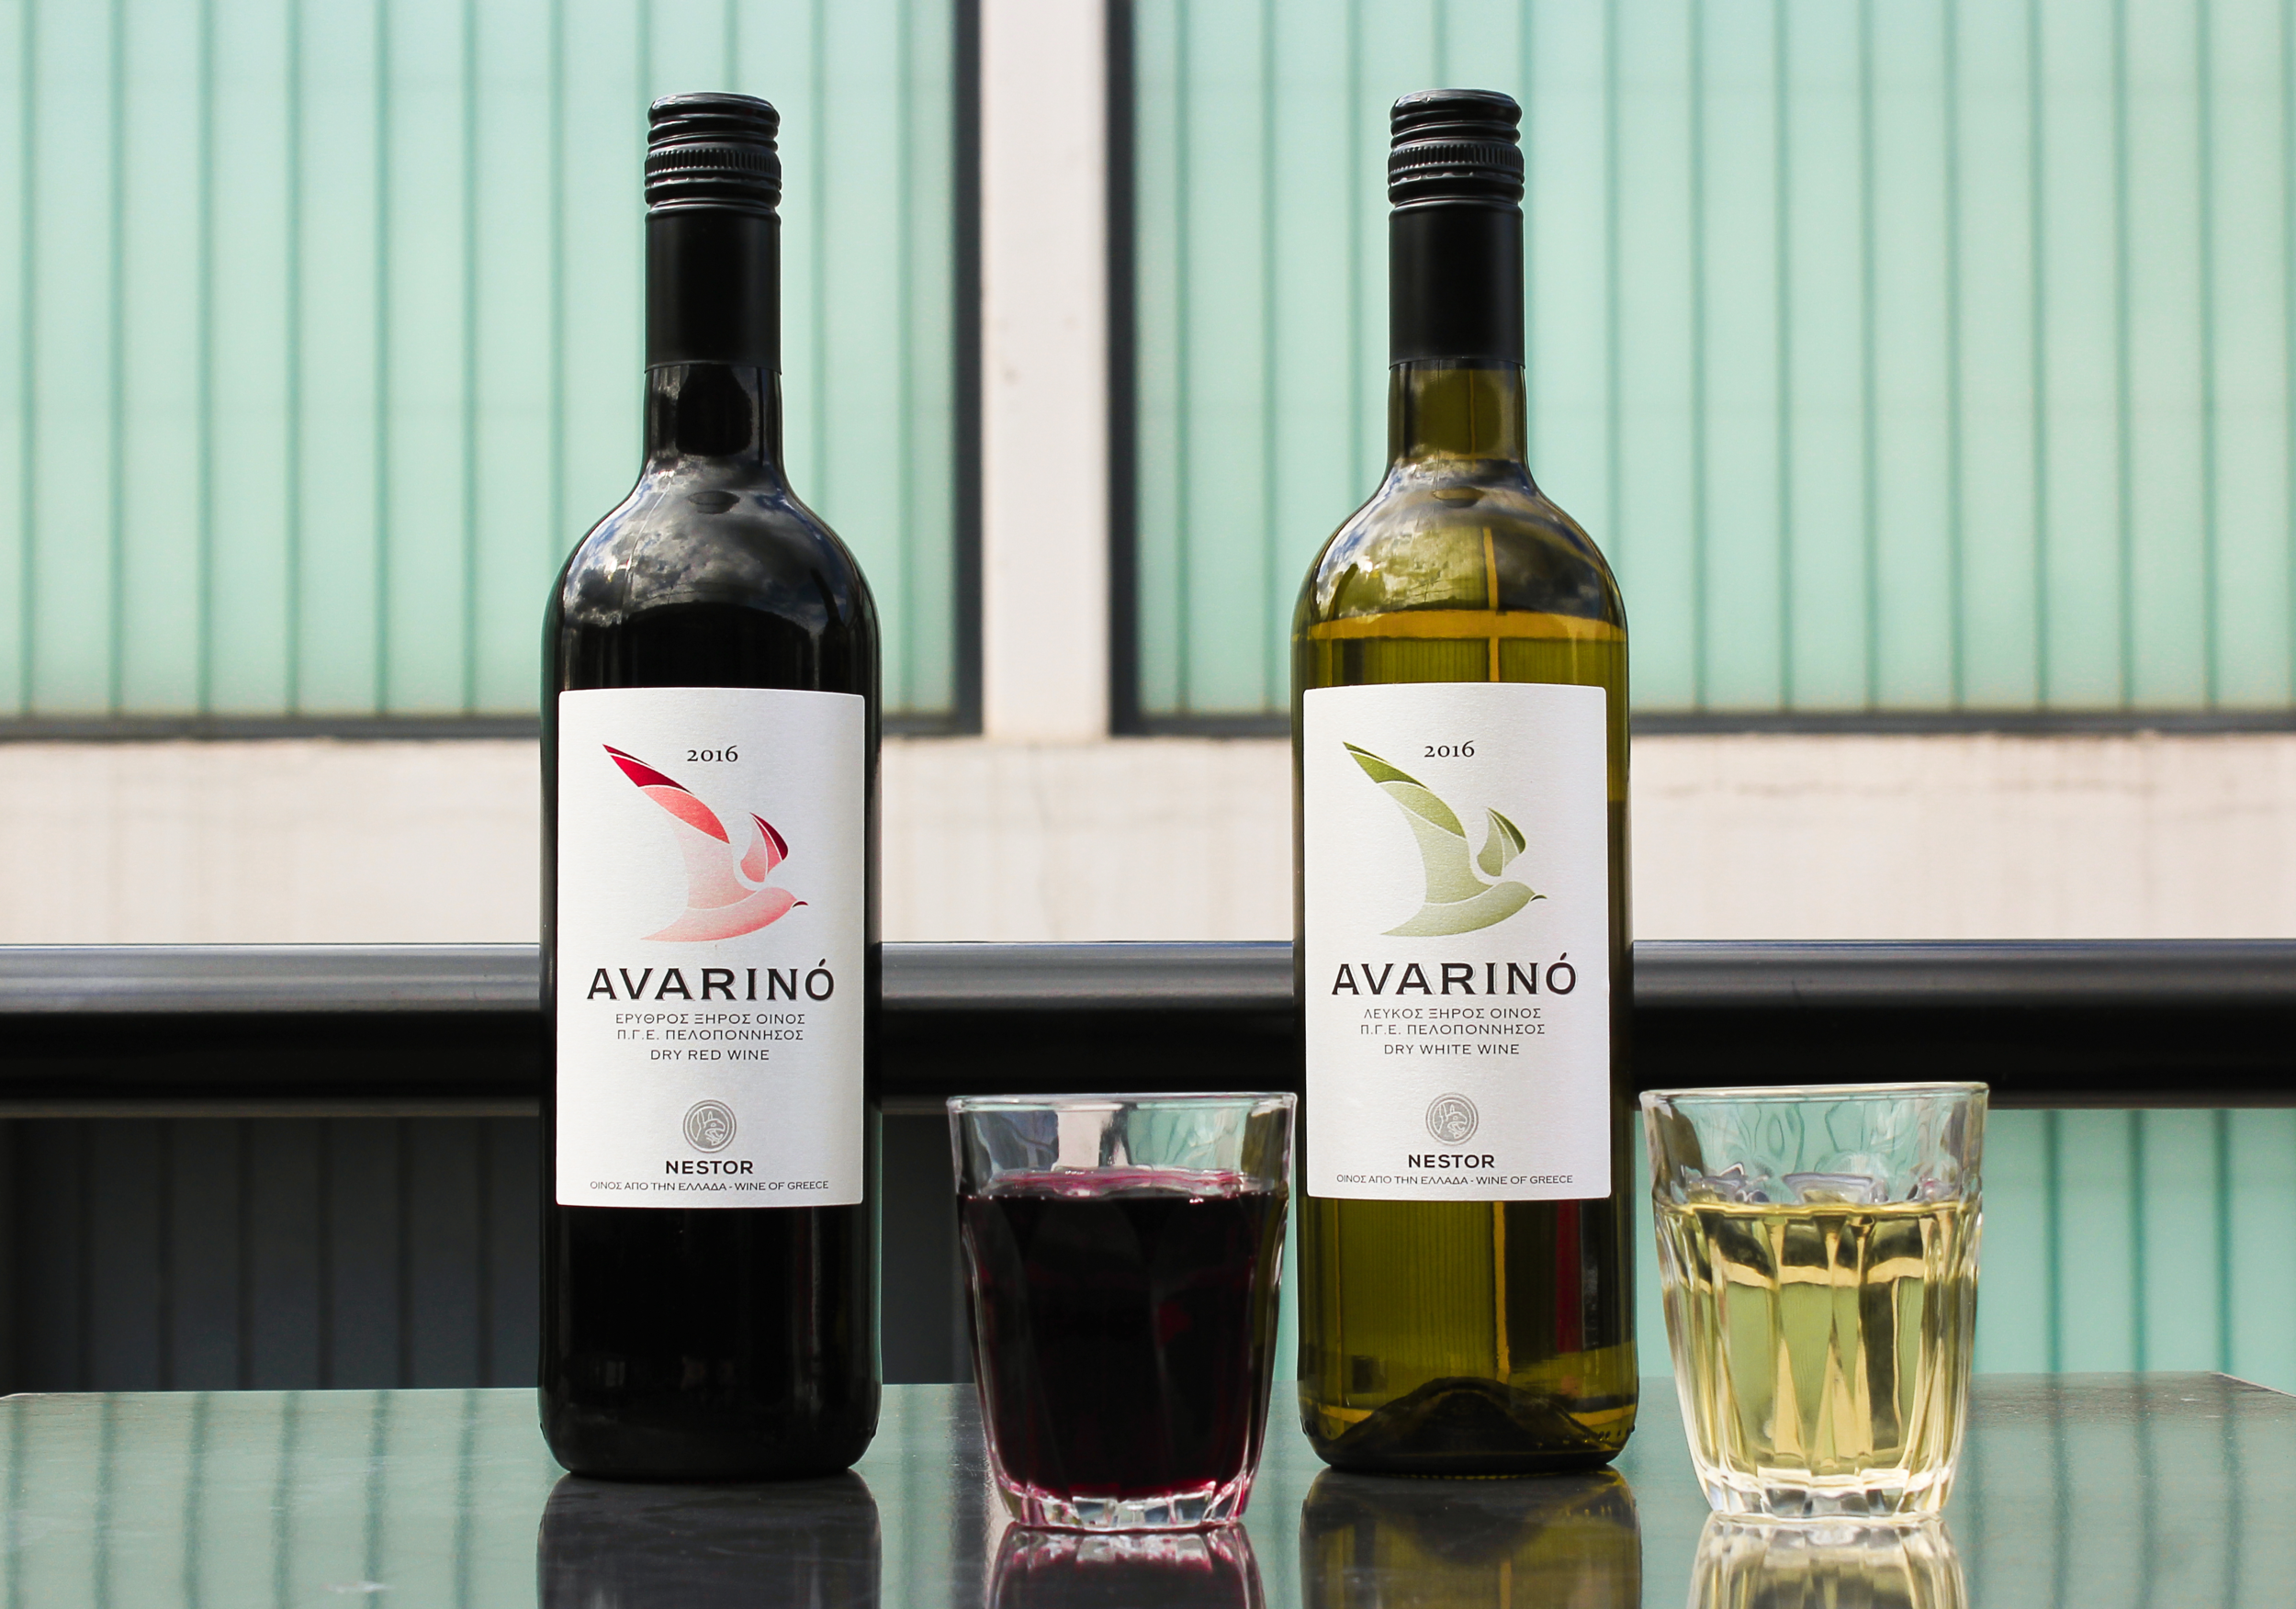 Our Nemean wine taken directly from Peloponnese in Southern Greece.The grapes are cultivated in the PDO Mantinia region and they're characterised by mildly fruity flavors and delicate, muscat aromas.